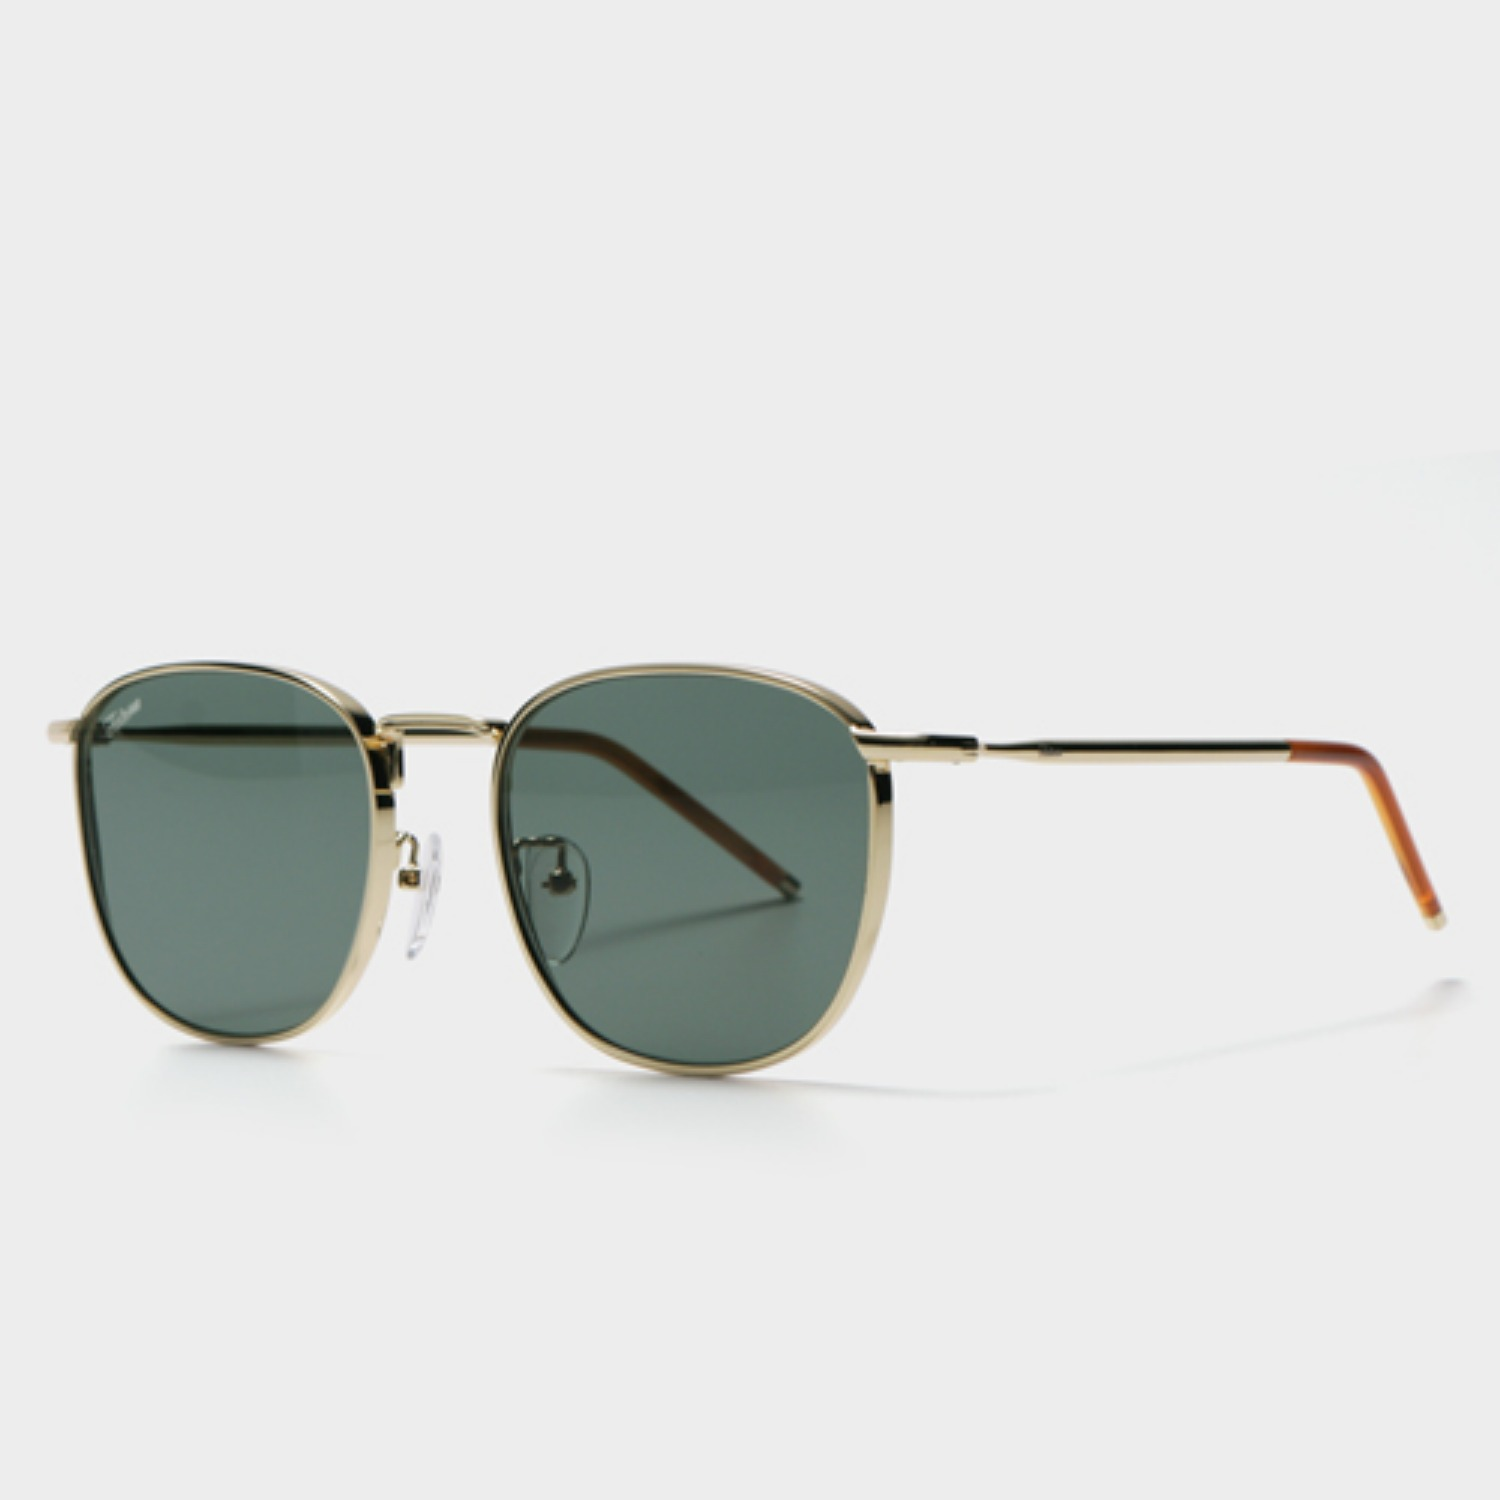 페이크미 B53 S 0 nothing H GLD (Green Lens)